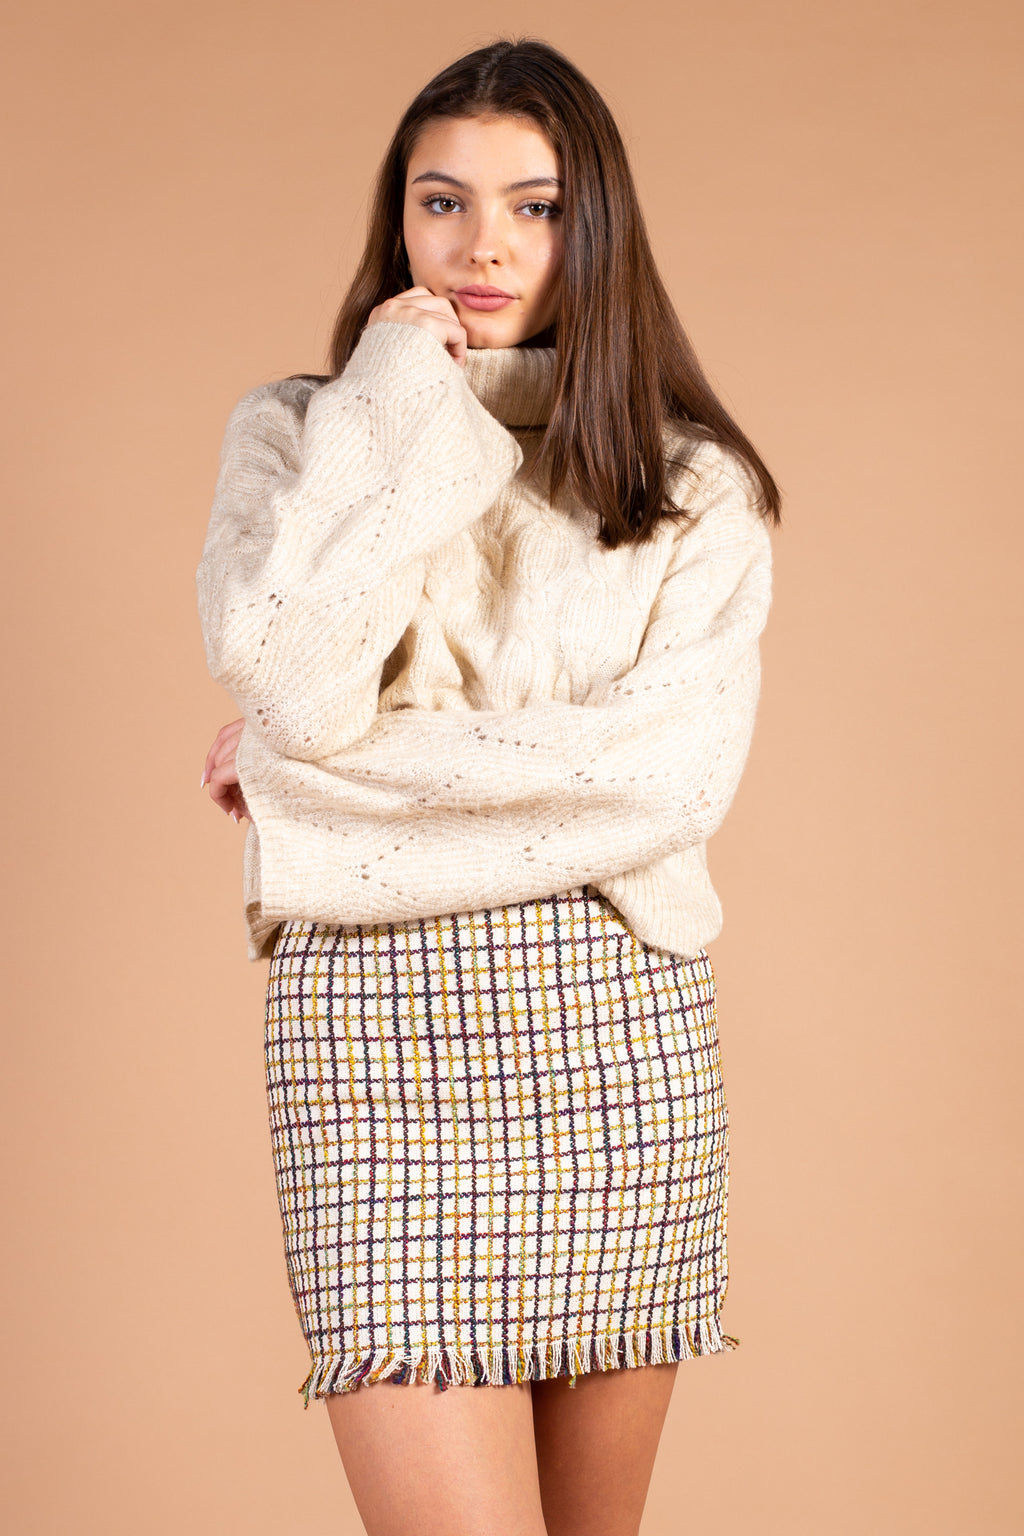 Turtleneck Cable Knit Sweater - honey